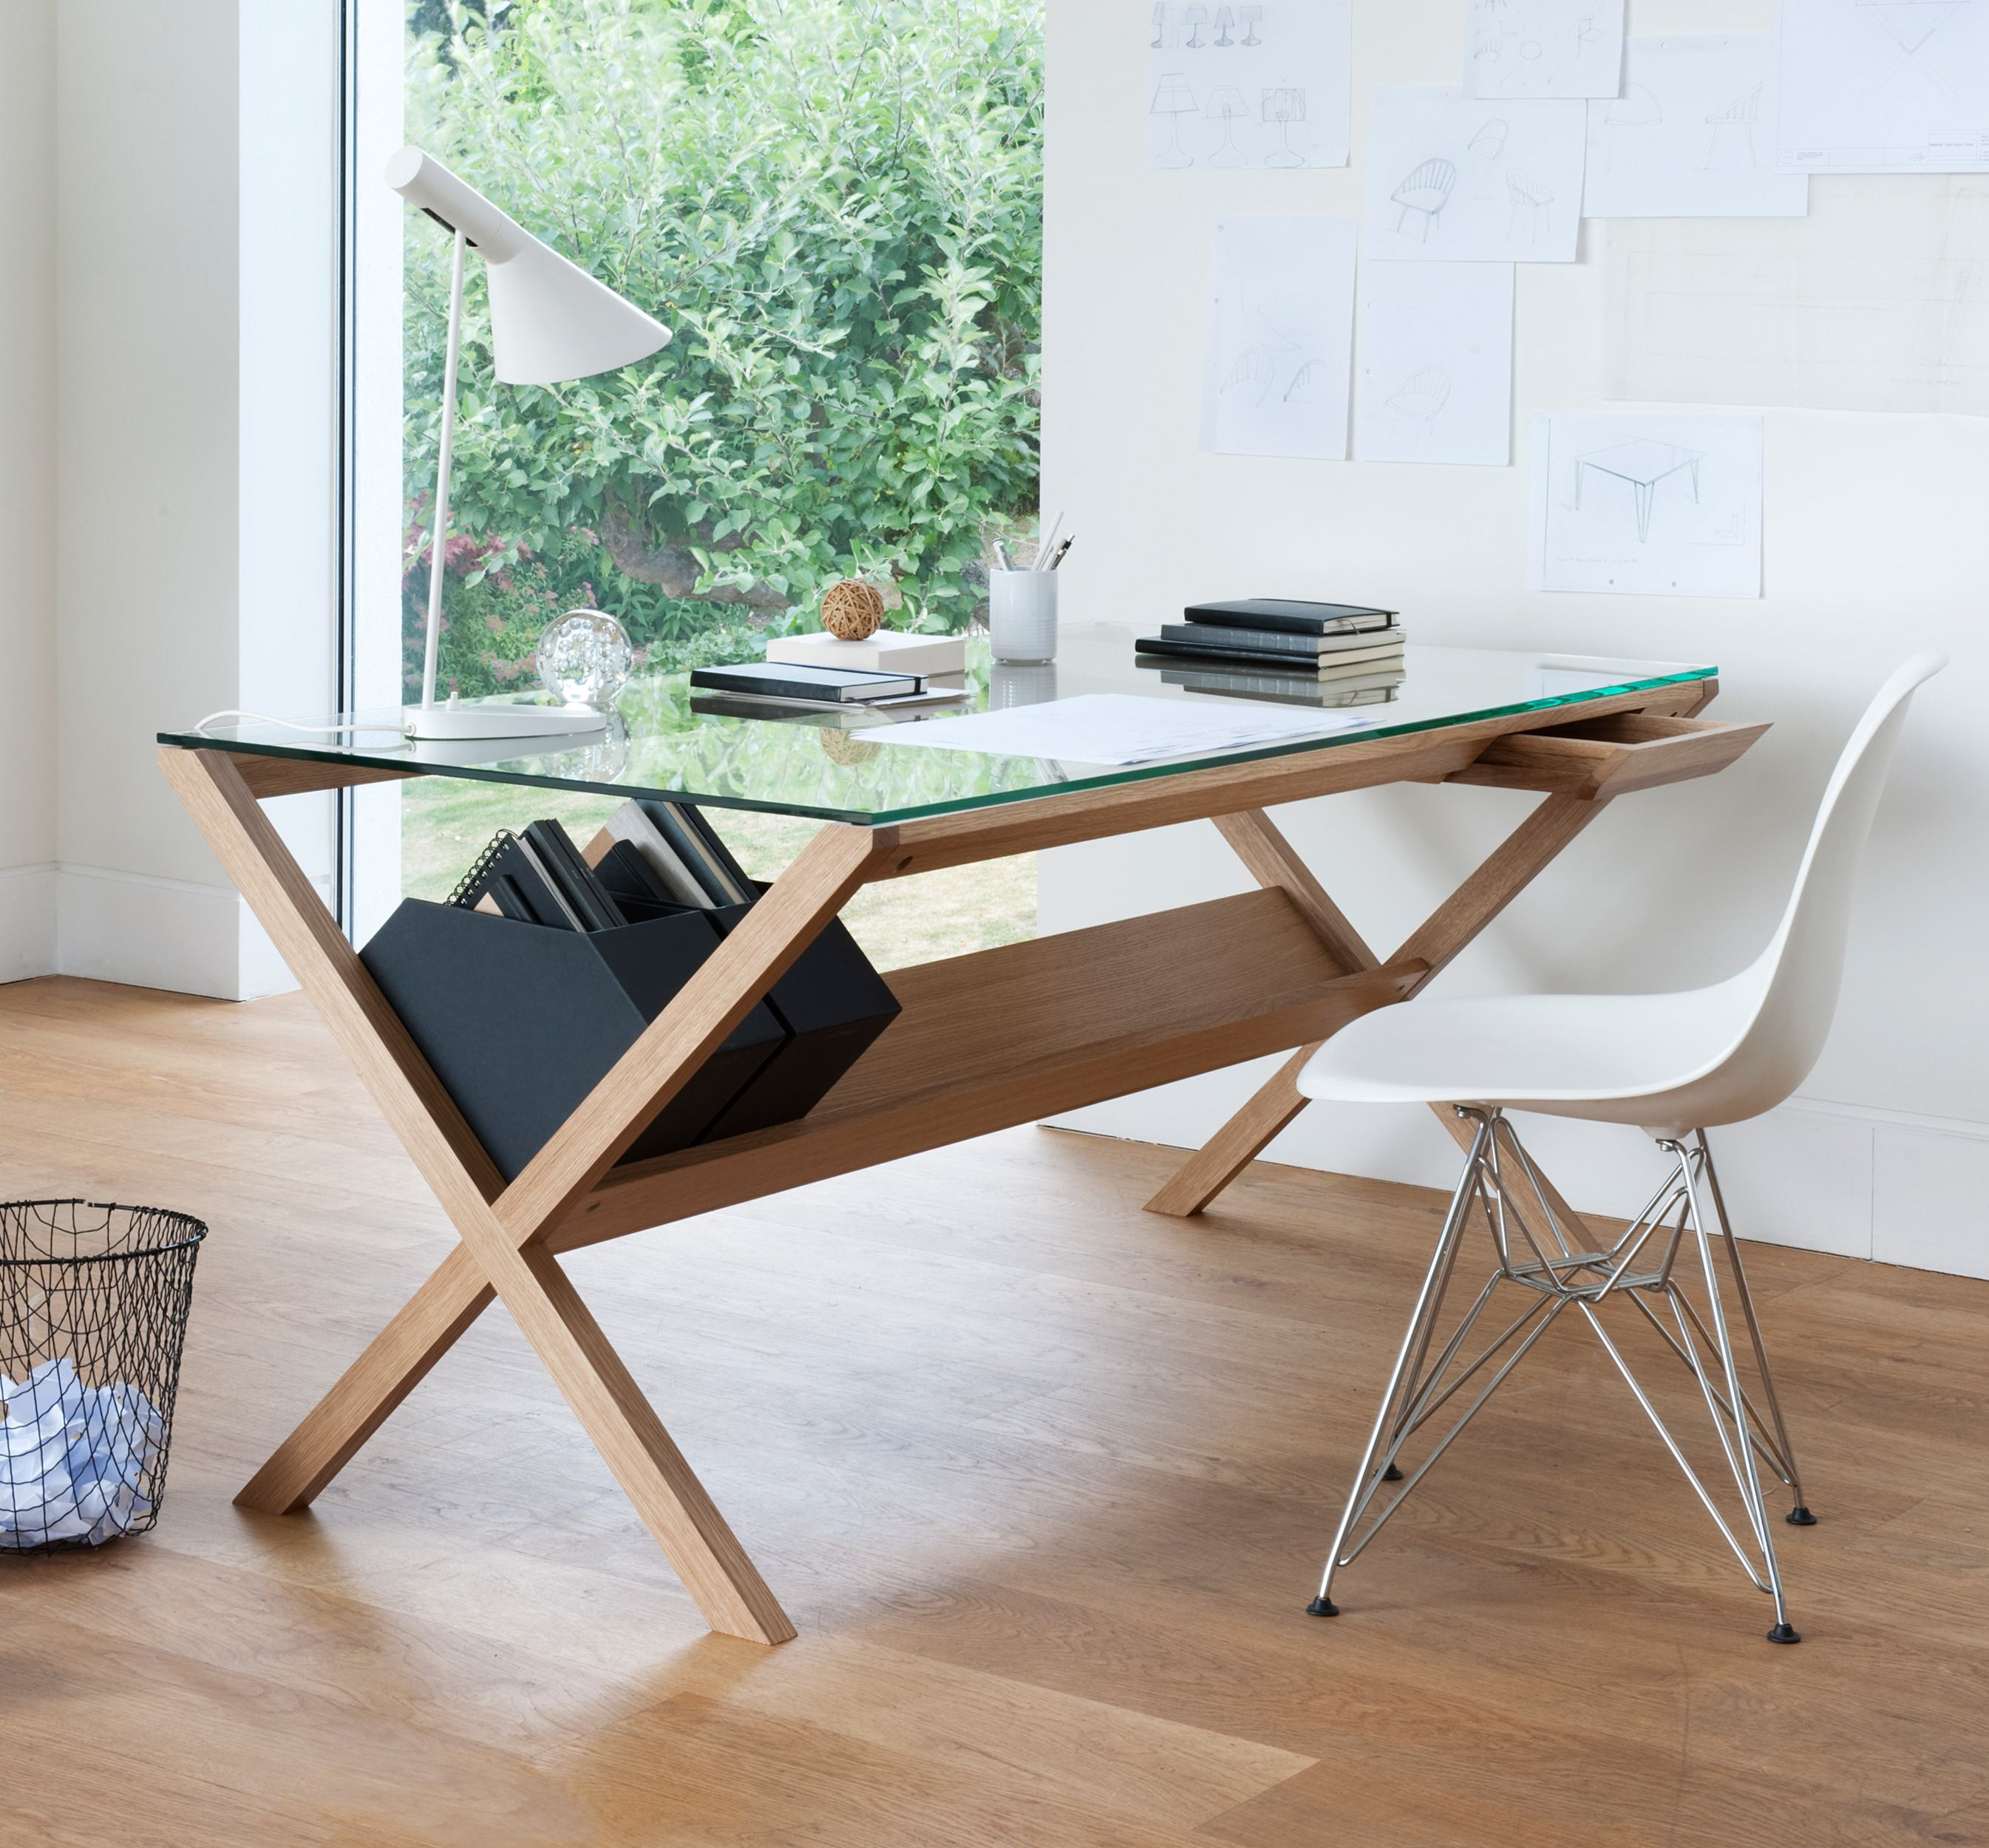 Best ideas about Office Desks For Home . Save or Pin Covet Desk by Shin Azumi Now.